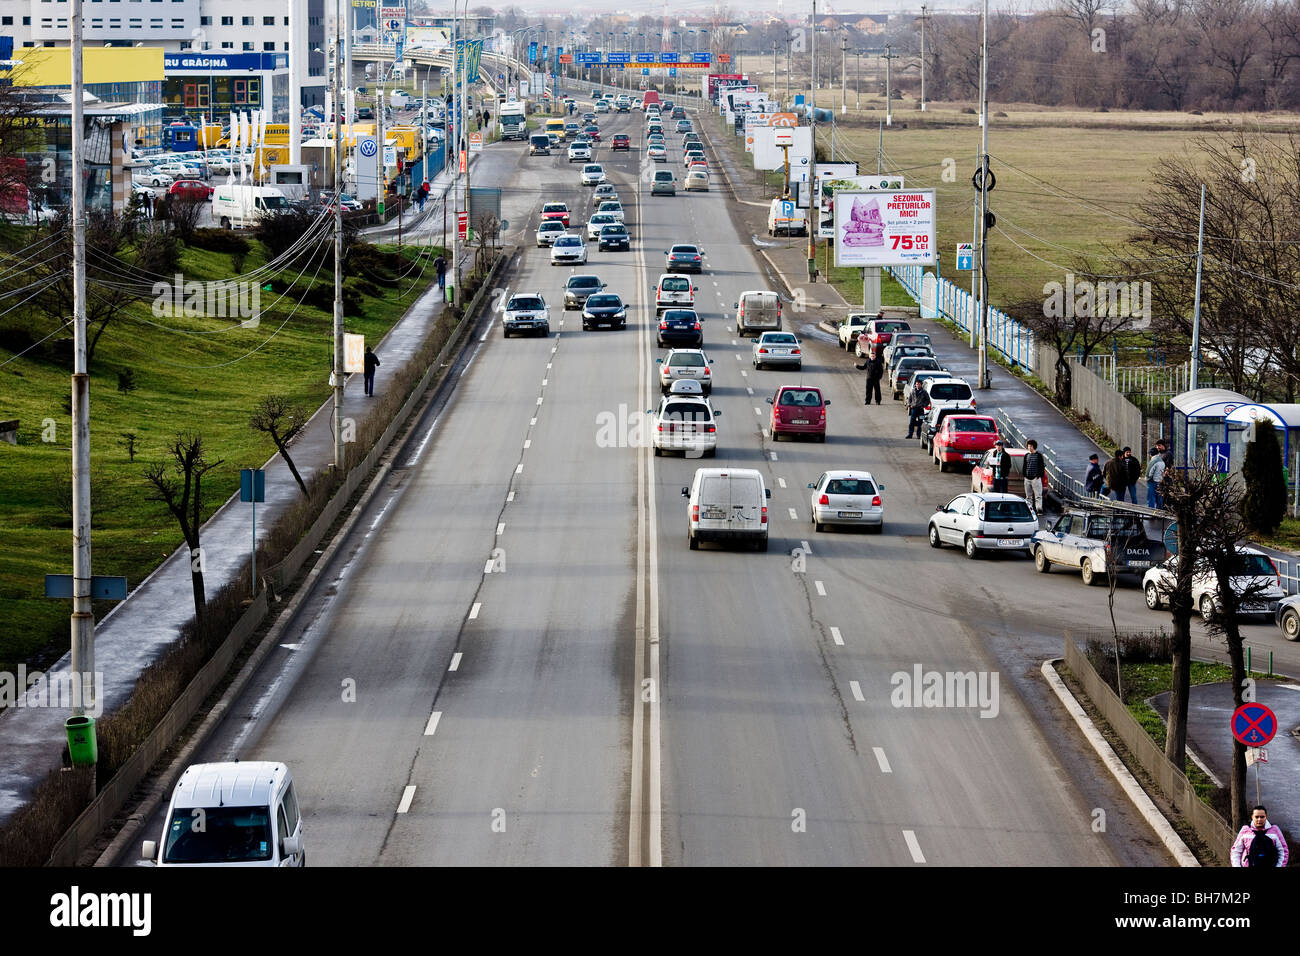 Cars and pedestrians on the DN1 arterial road to Oradea on the outskirts of Cluj-Napoca Romania - Stock Image